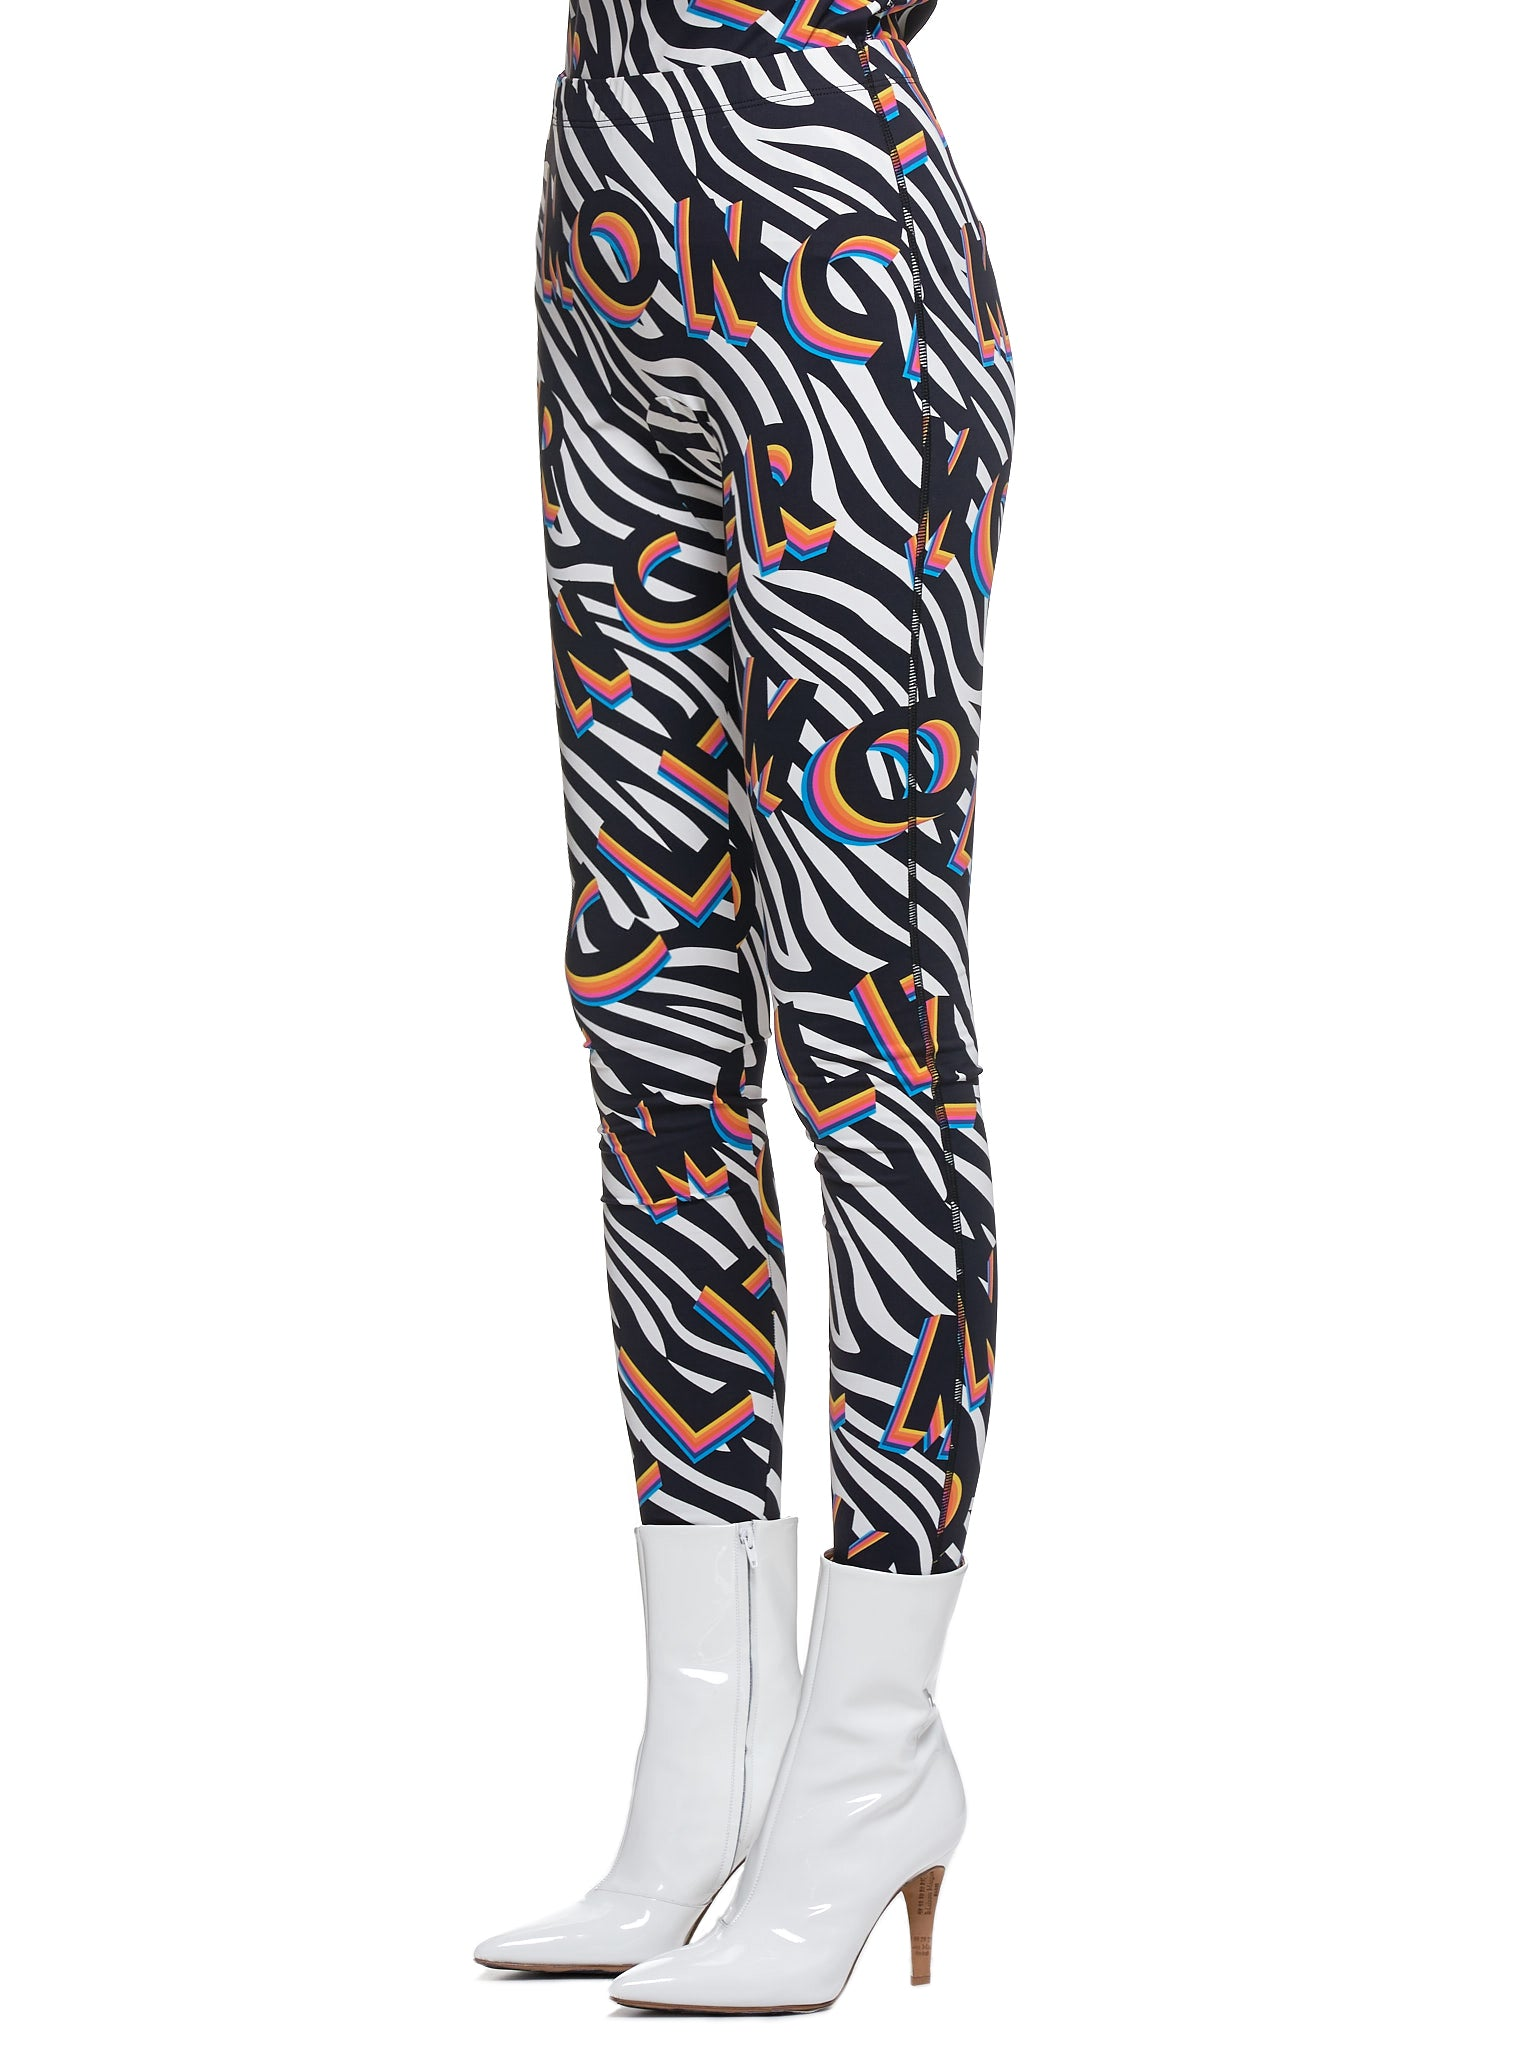 Moncler Genius x Richard Quinn Leggings - Hlorenzo Side